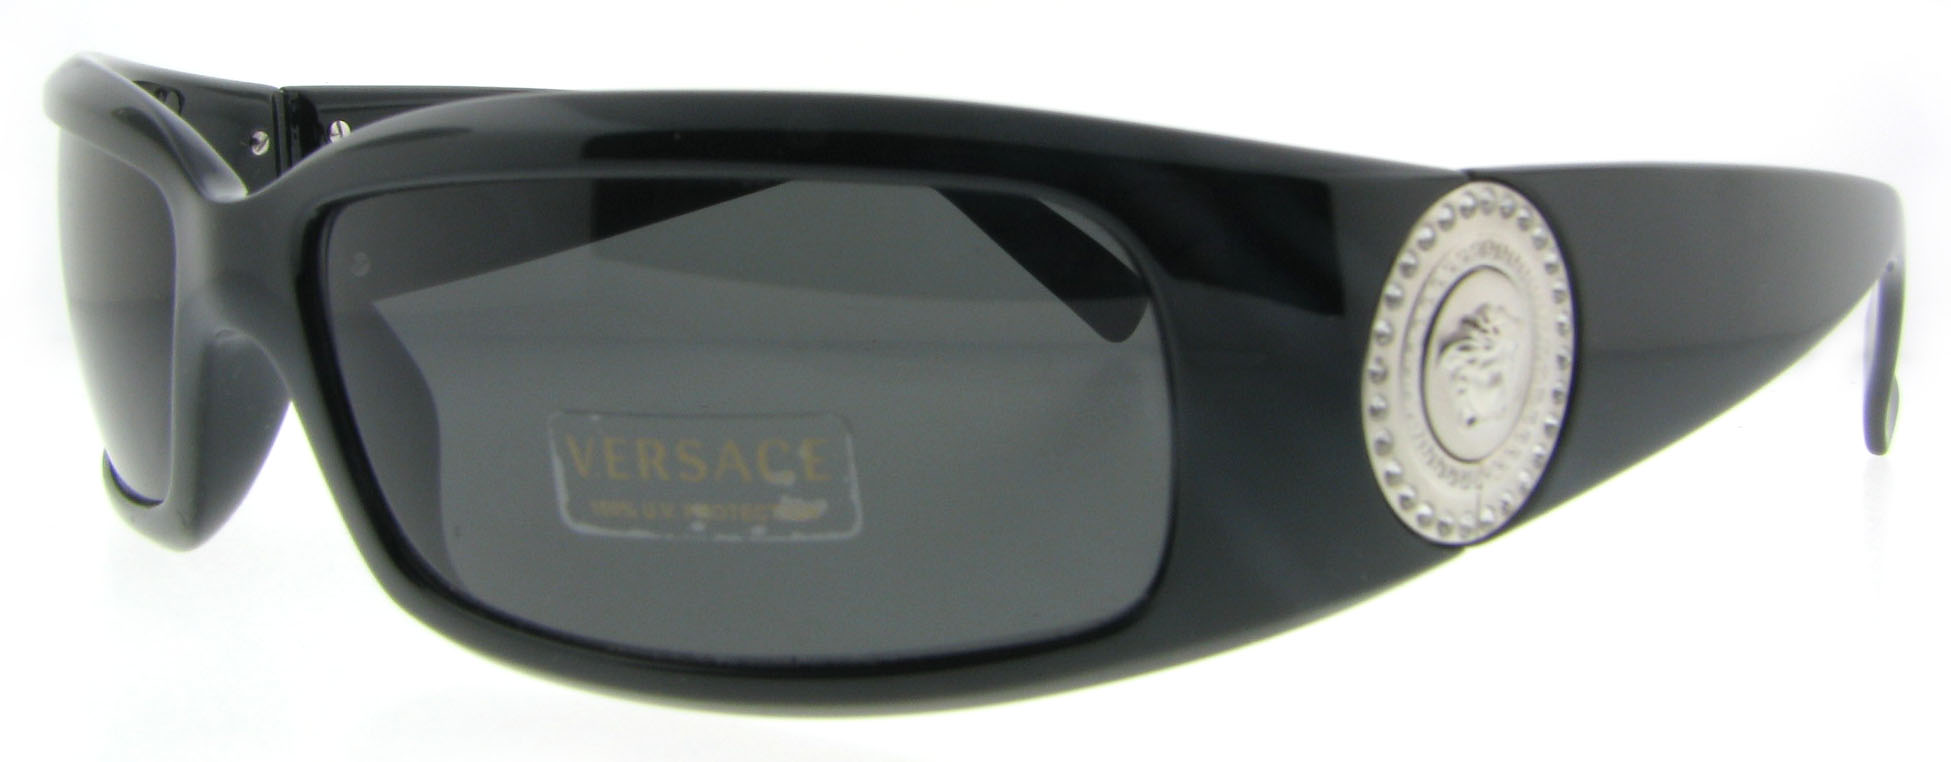 34e084bbc8 UPC 725125458092 - VE 4044B GB1 87 Black by Versace for Unisex - 60-.  sunglasses ...